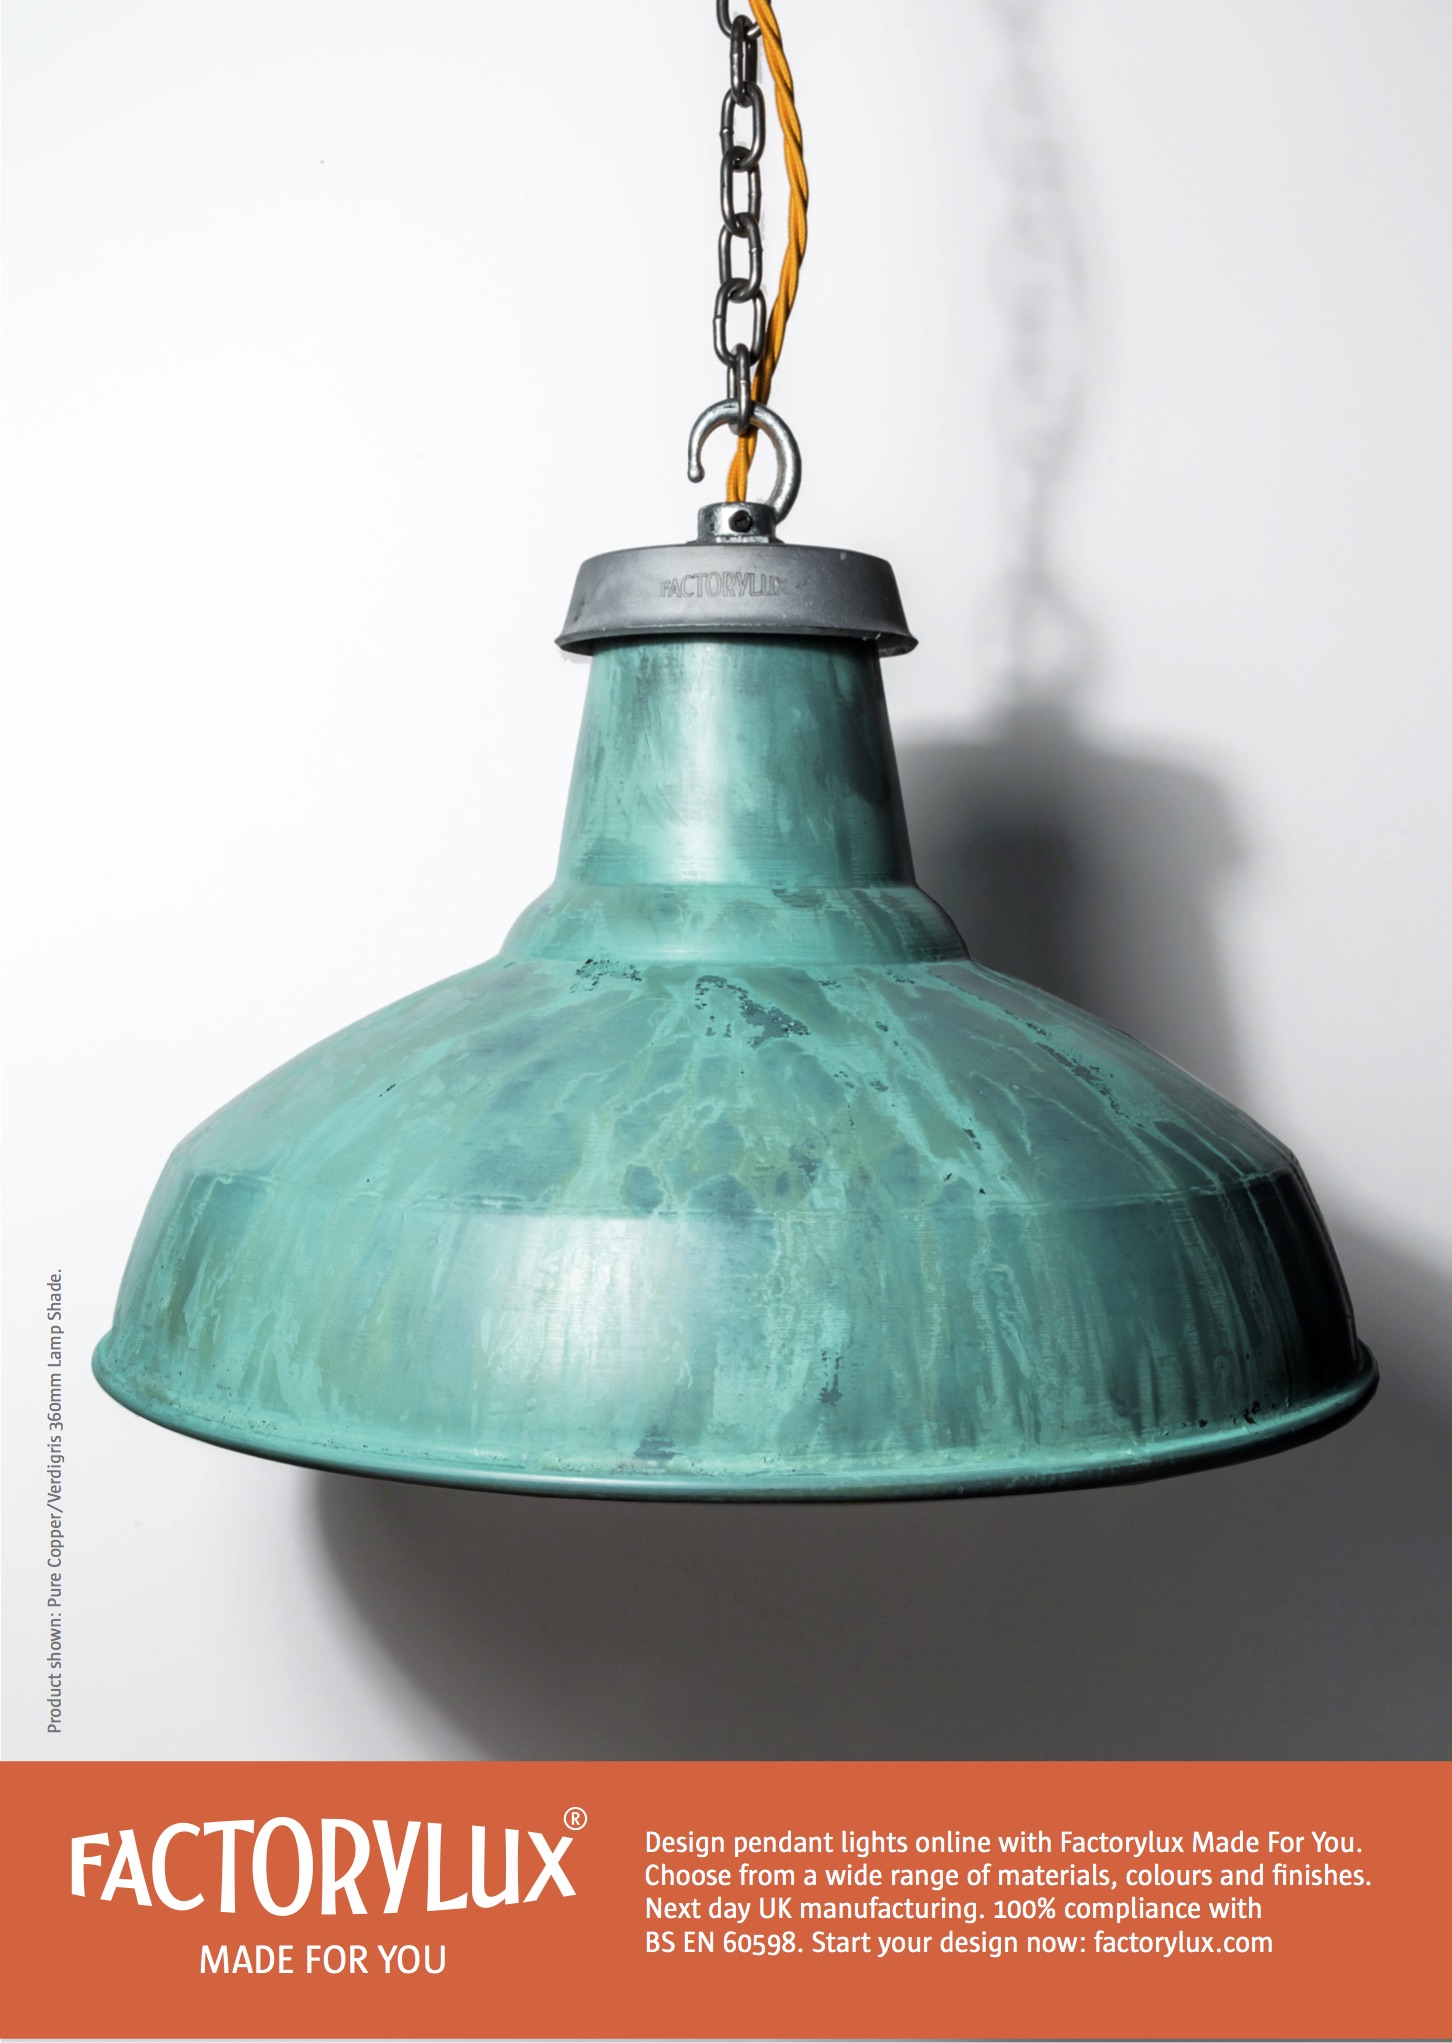 verdigris lamp shade by Factorylux